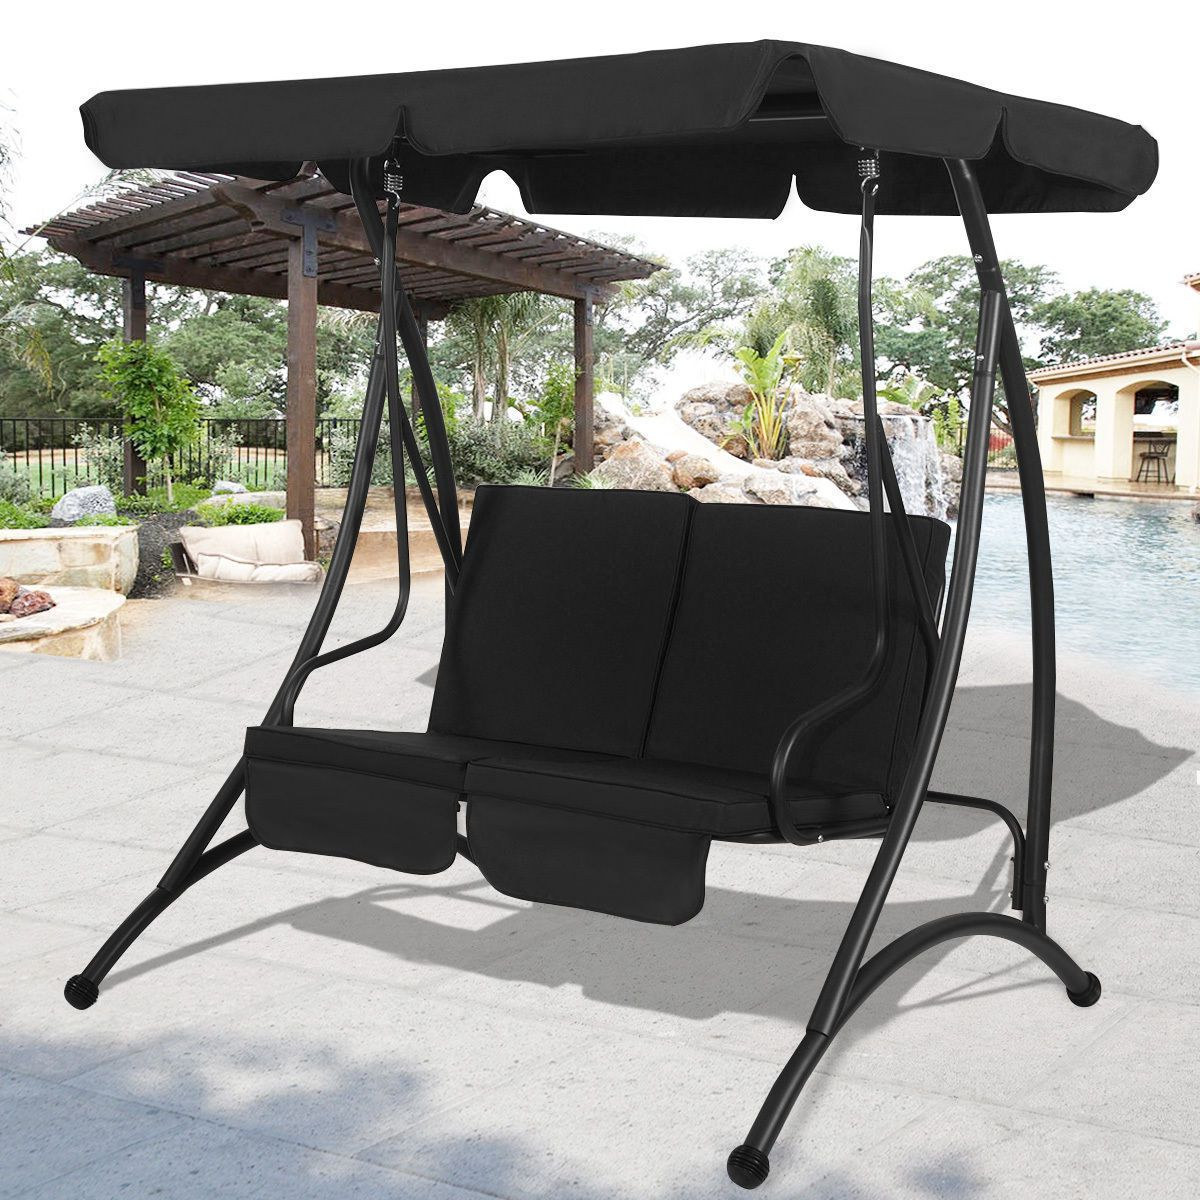 Outdoor Patio Canopy Swing Chair Metal 2 Person Garden Within Well Known Canopy Patio Porch Swings With Pillows And Cup Holders (View 3 of 25)